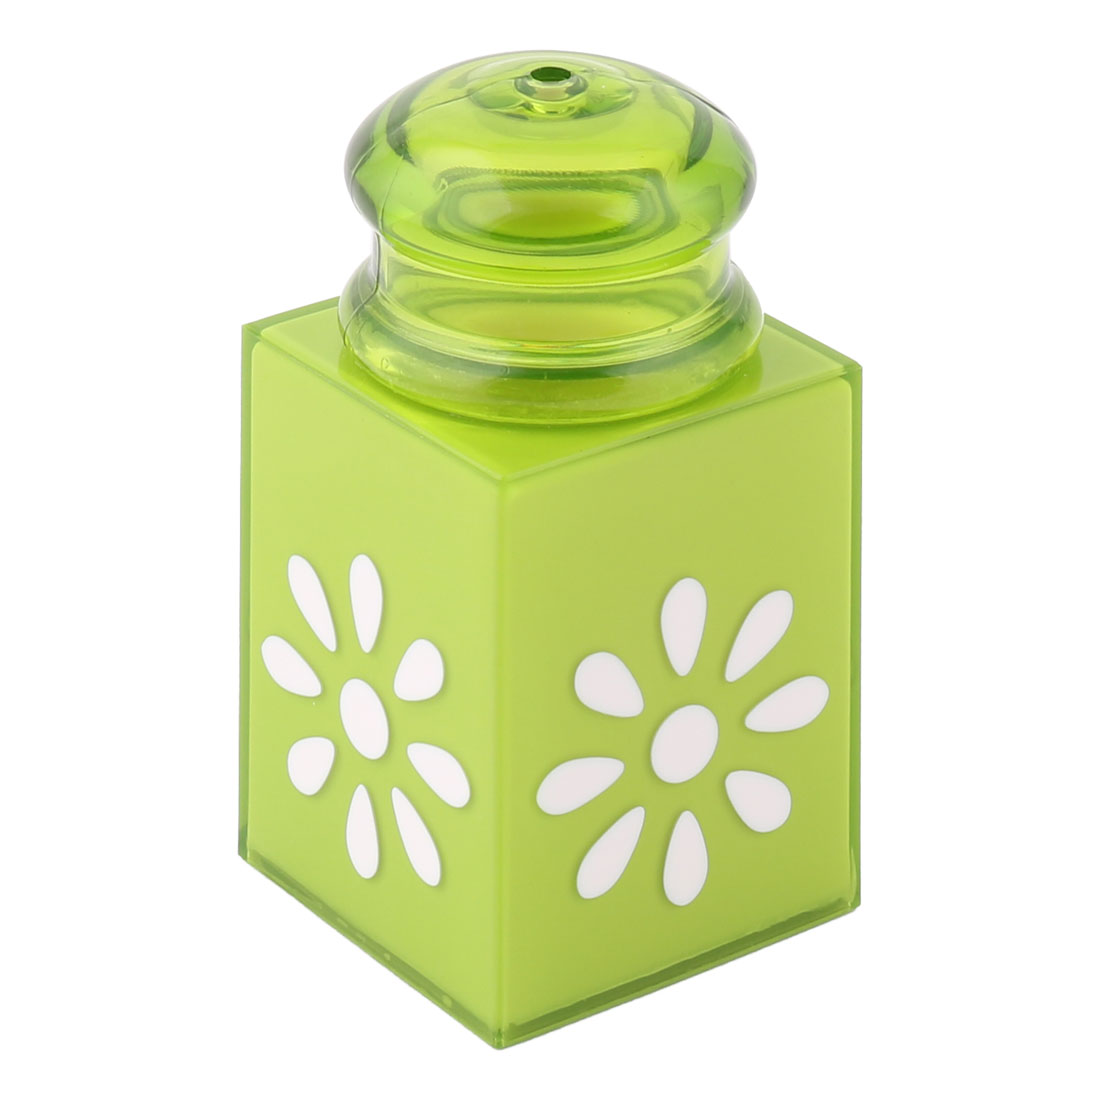 Home Plastic Can Signet Shaped Flower Pattern Toothpick Holder Storage Box Green